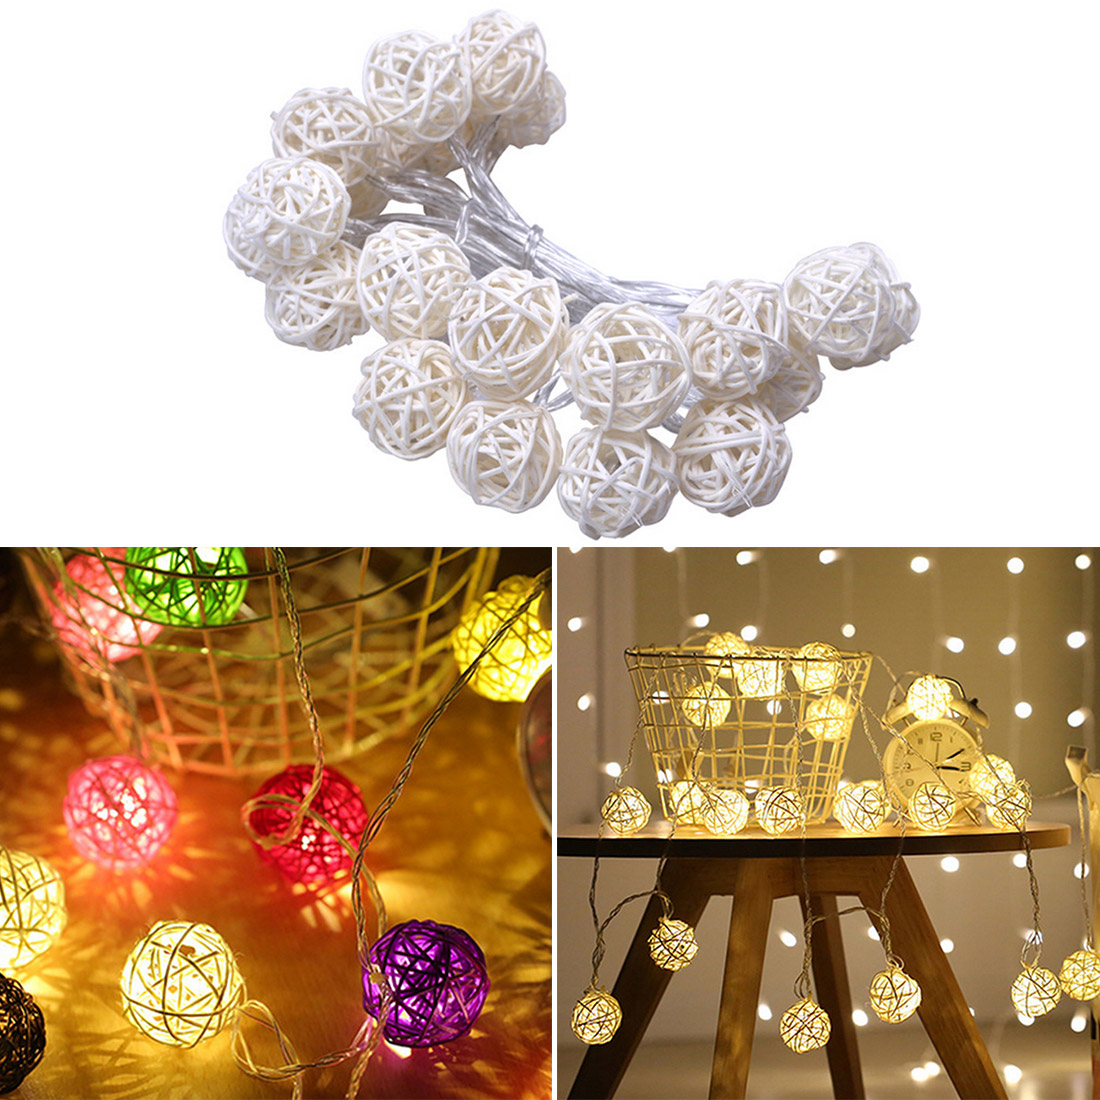 5mm Led Rattan Balls Fairy String Decorative Lights Battery Operated Christmas Outdoor Patio Garland Wedding Decoration solar string lights 50 led blossom flower fairy light christmas lights for outdoor led garland patio party wedding decoration